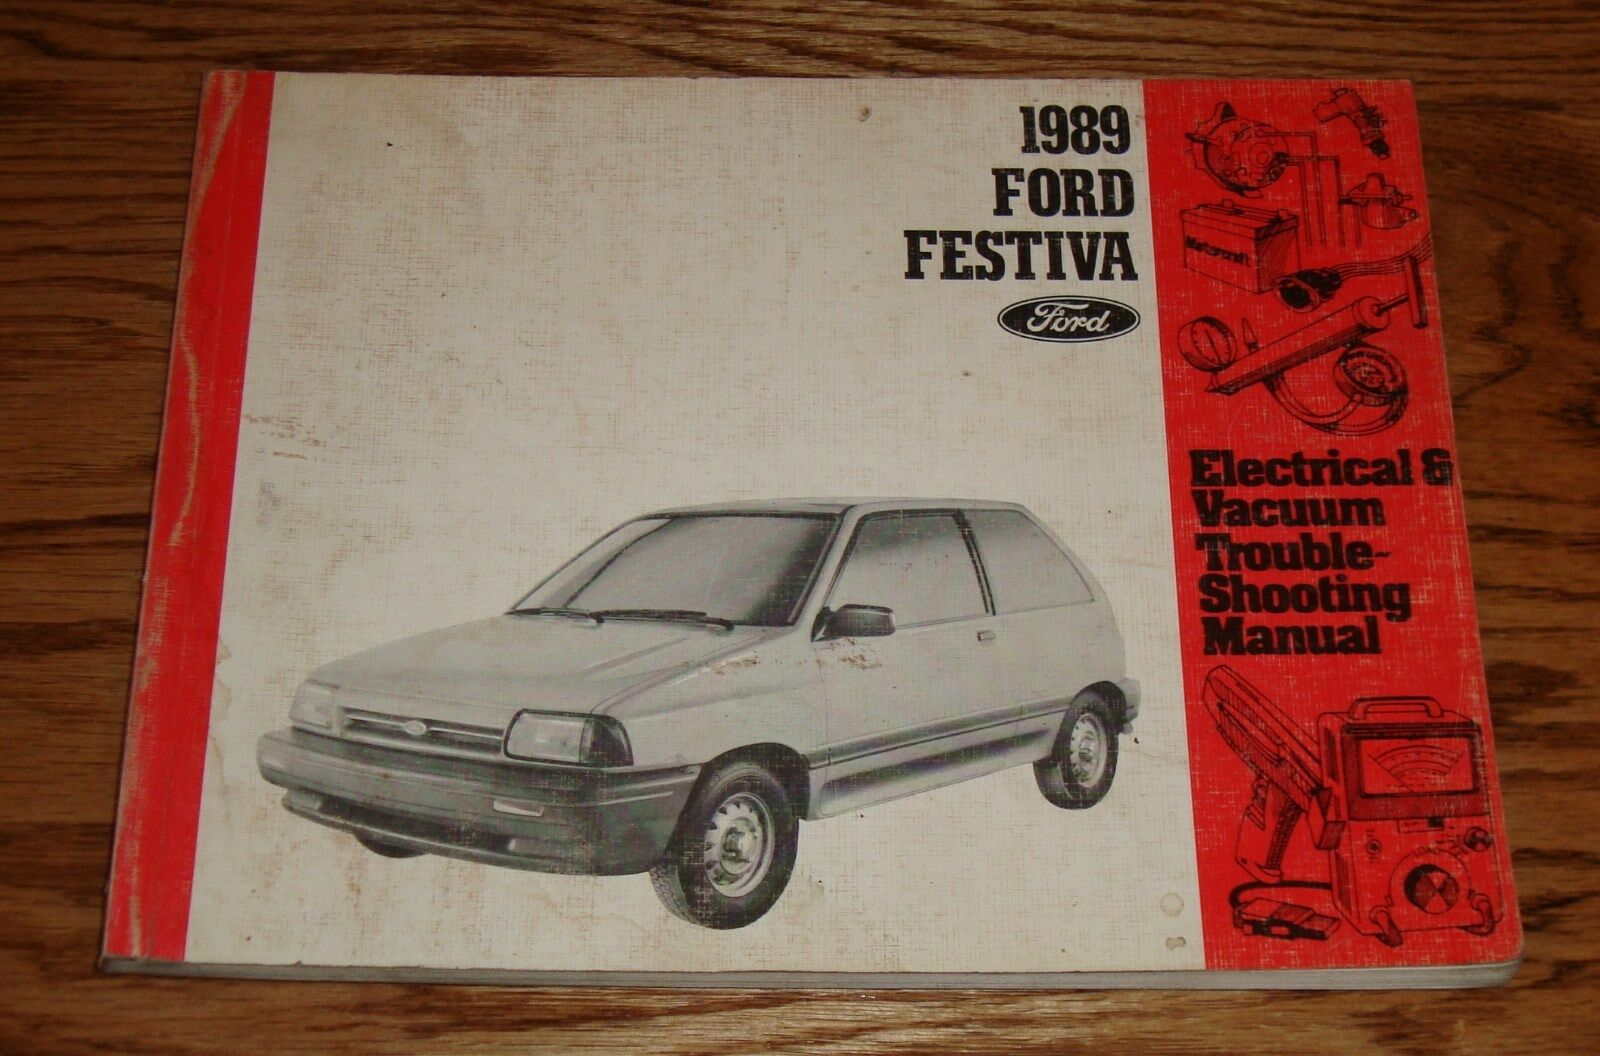 1989 Ford Festiva Electrical Vacuum Troubleshooting Manual Wiring Diagram For 1976 Chevy Monza Fuel Pump 1 Of 1only Available